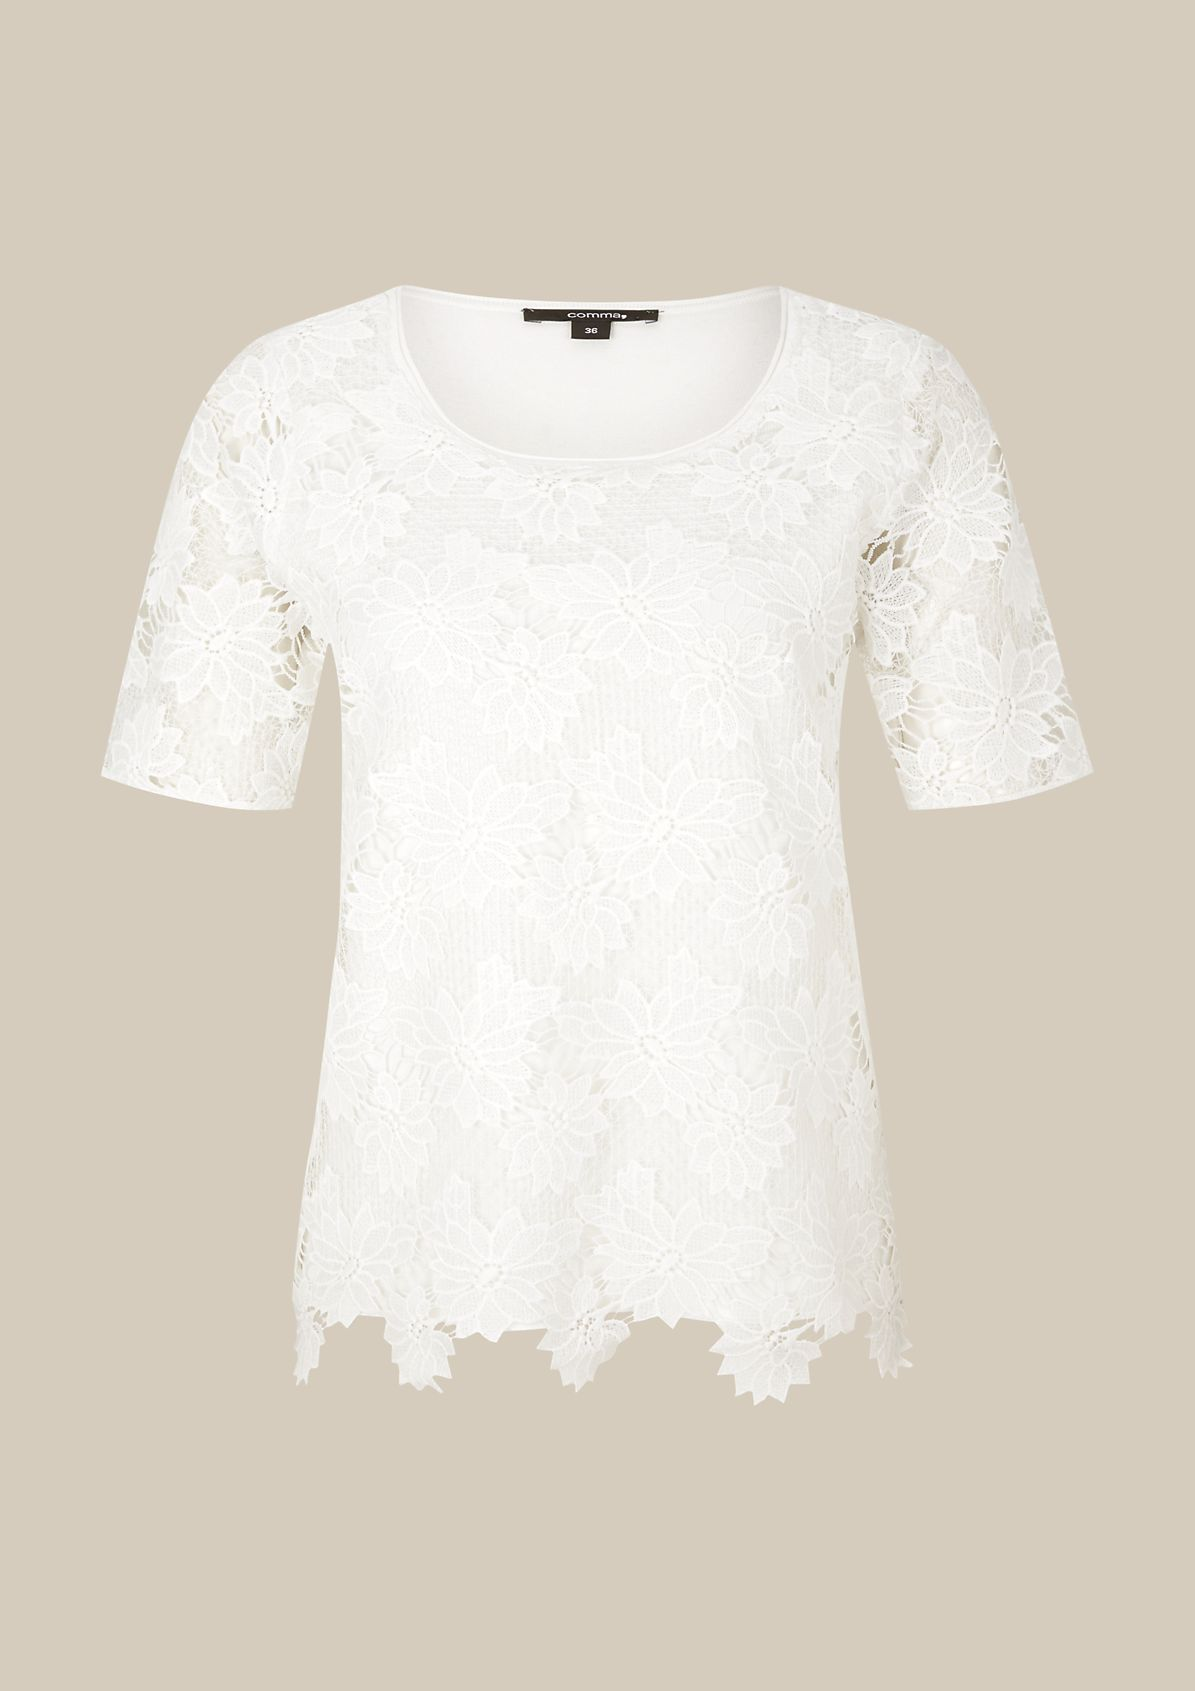 Extravagant short-sleeved knitted jumper with a fine lace trim from comma